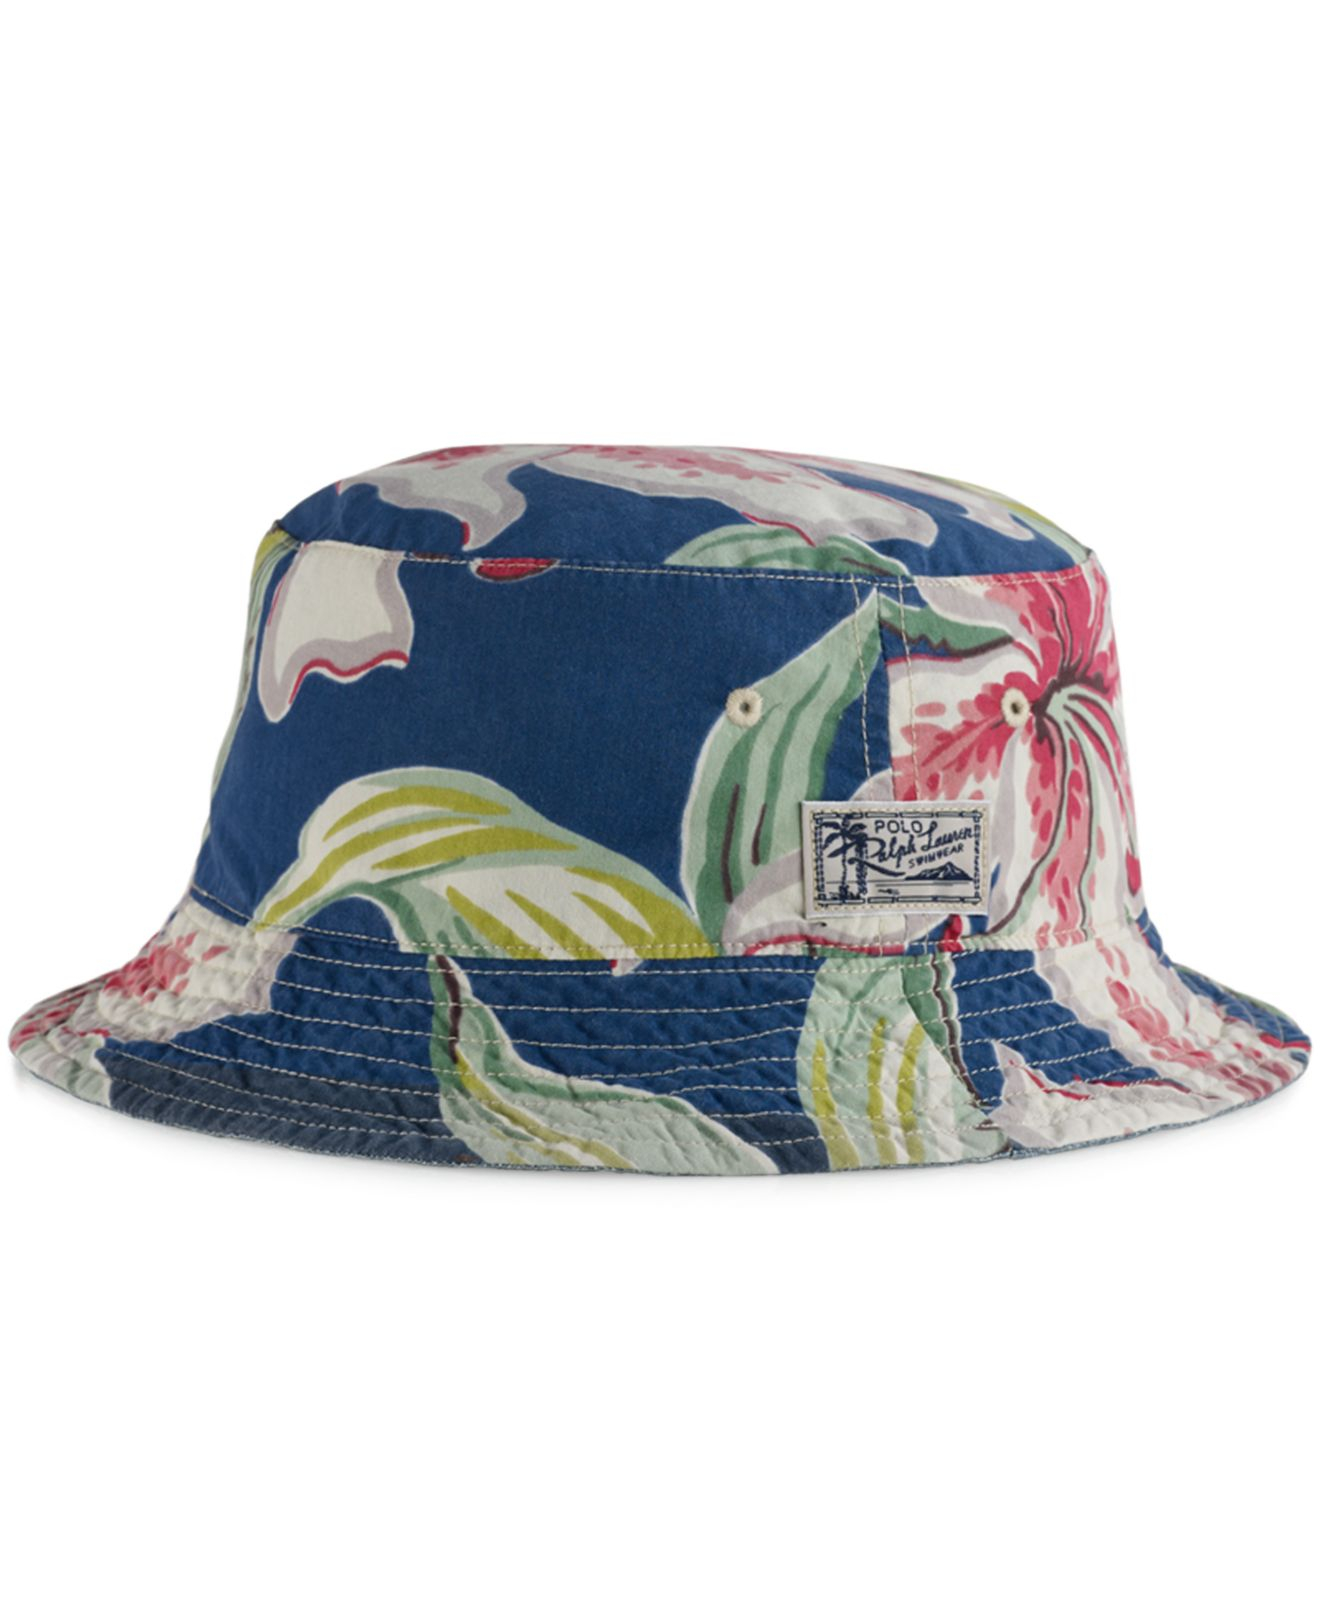 Lyst - Polo Ralph Lauren Big And Tall Reversible Tropical Bucket Hat ... a8a16d7f1024